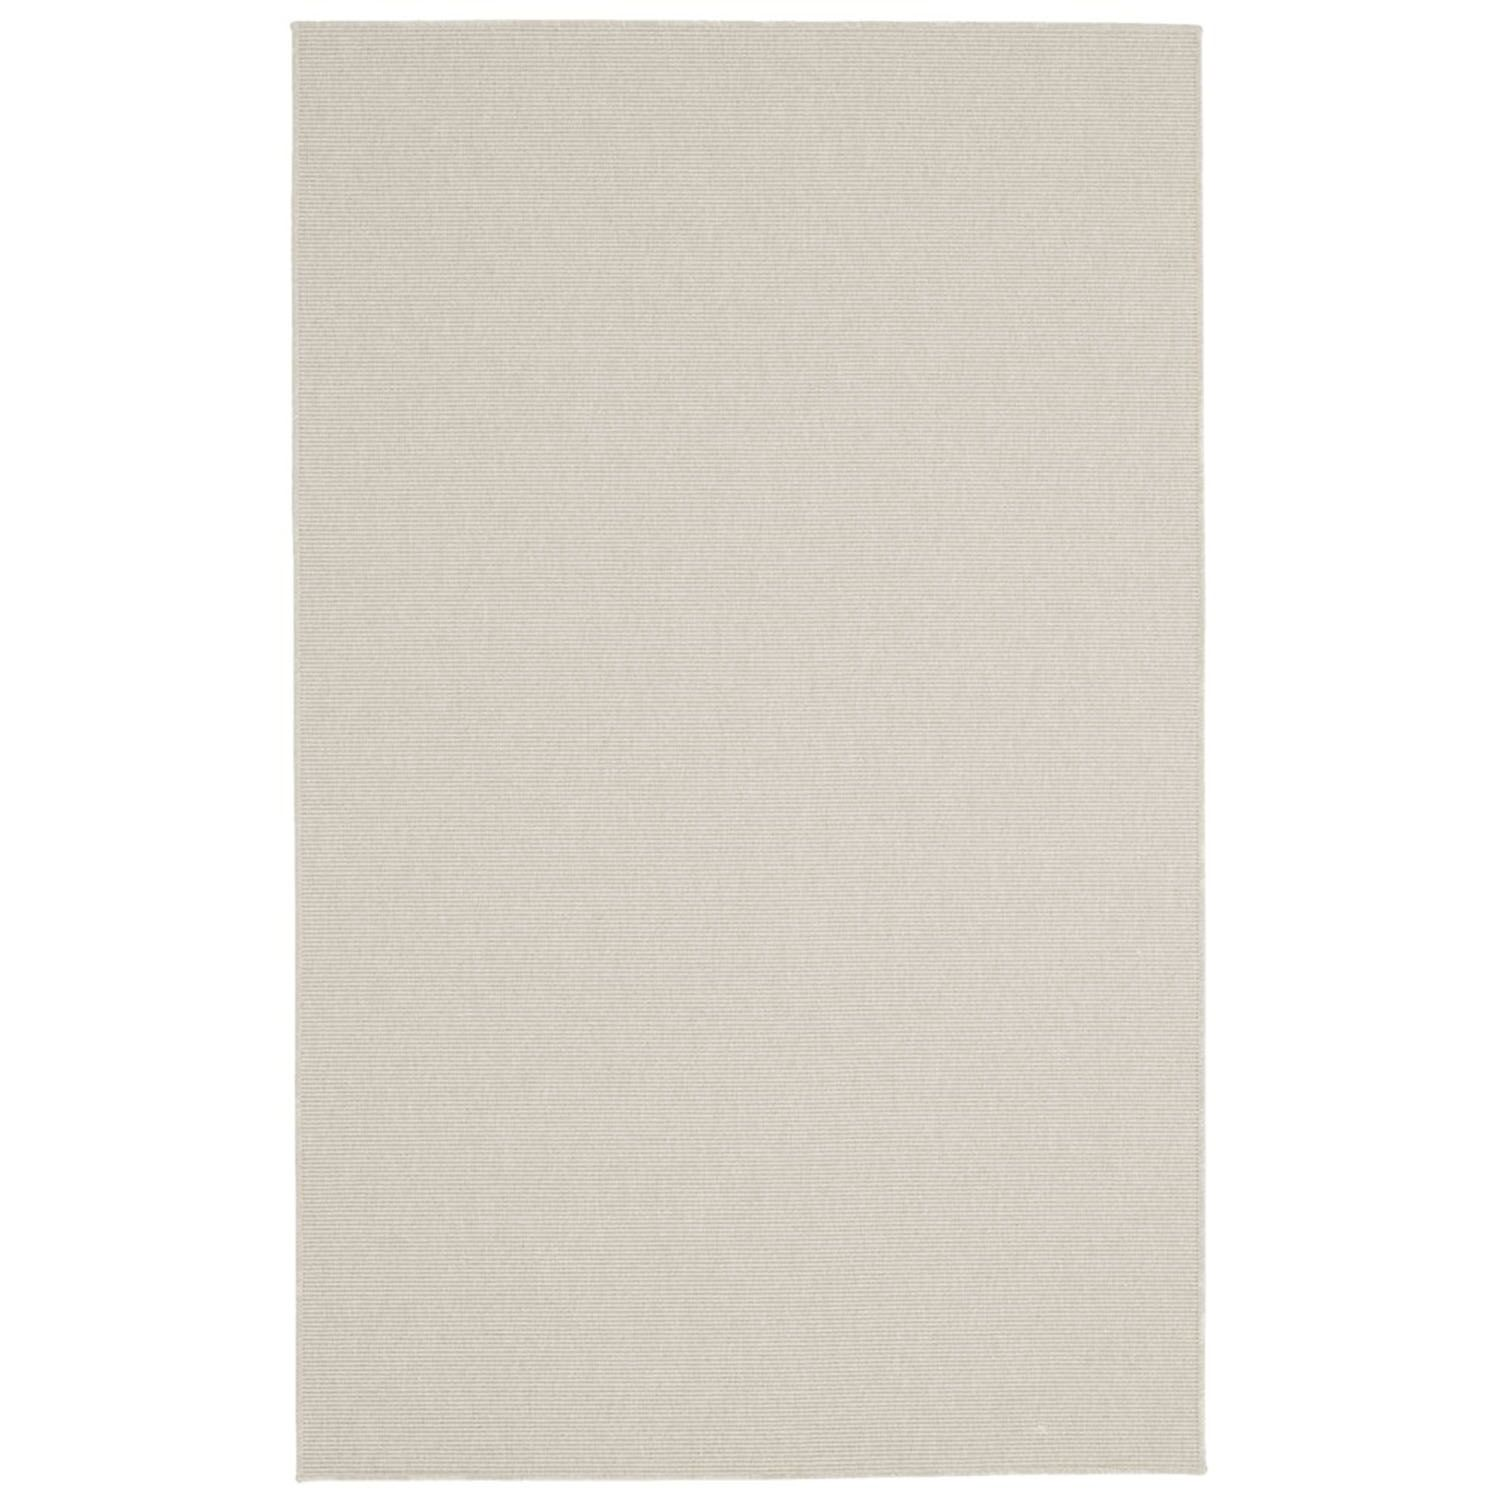 Paquerette Stone Area Rug Rug Size: Runner 2'6